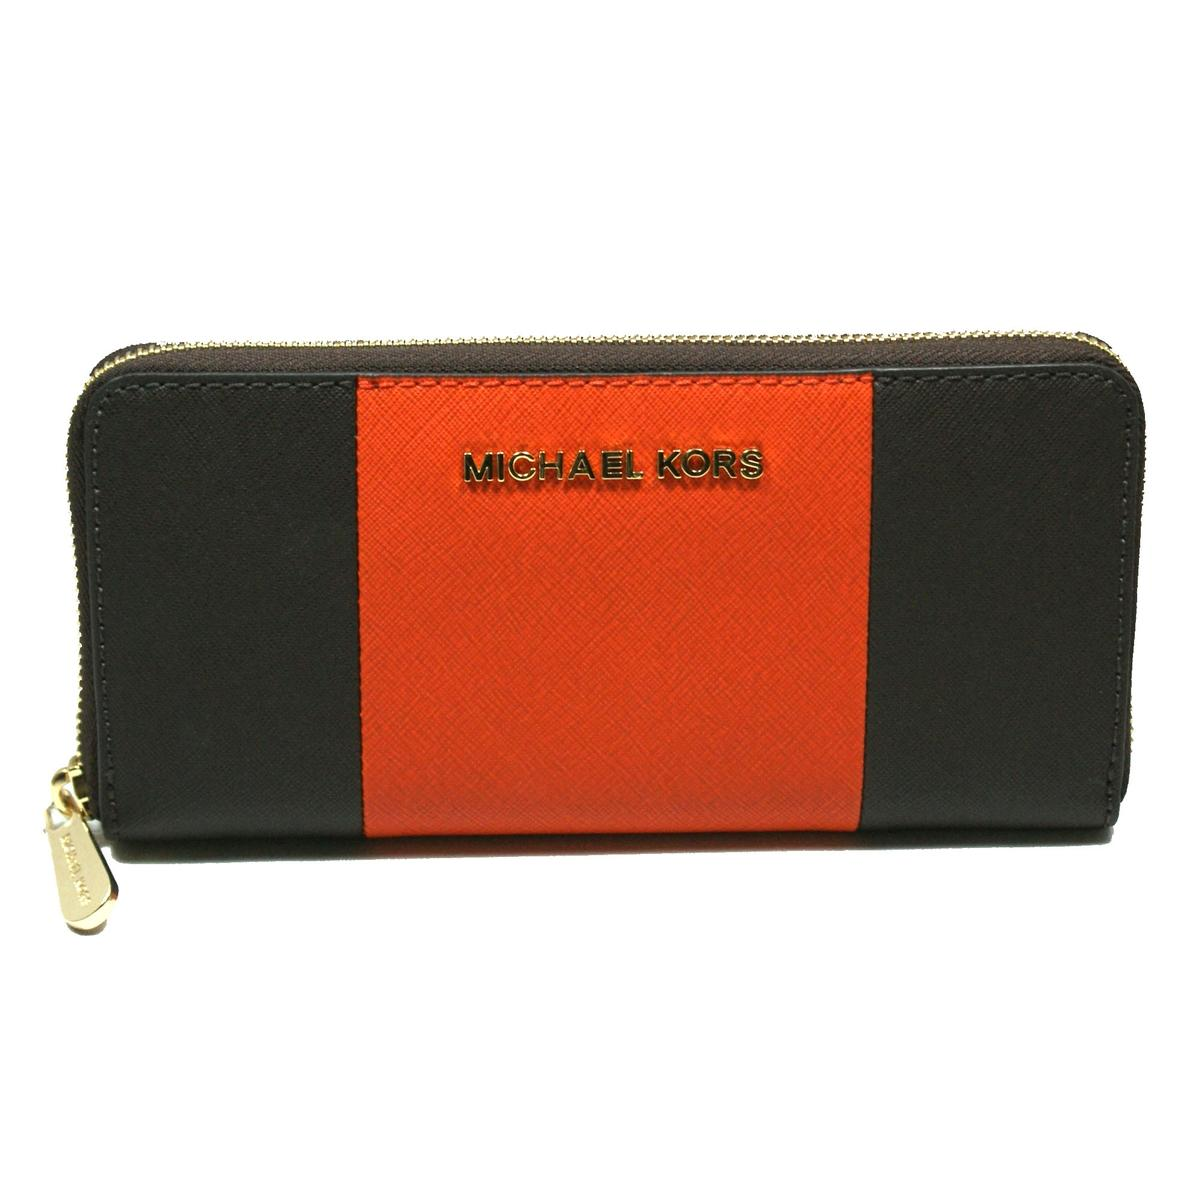 dd27ea79ca82 Home · Michael Kors · Jet Set Travel Center Stripe Continental Leather Zip  Around Wallet/ Clutch Coffee/ Orange. CLICK THUMBNAIL TO ZOOM. Found ...